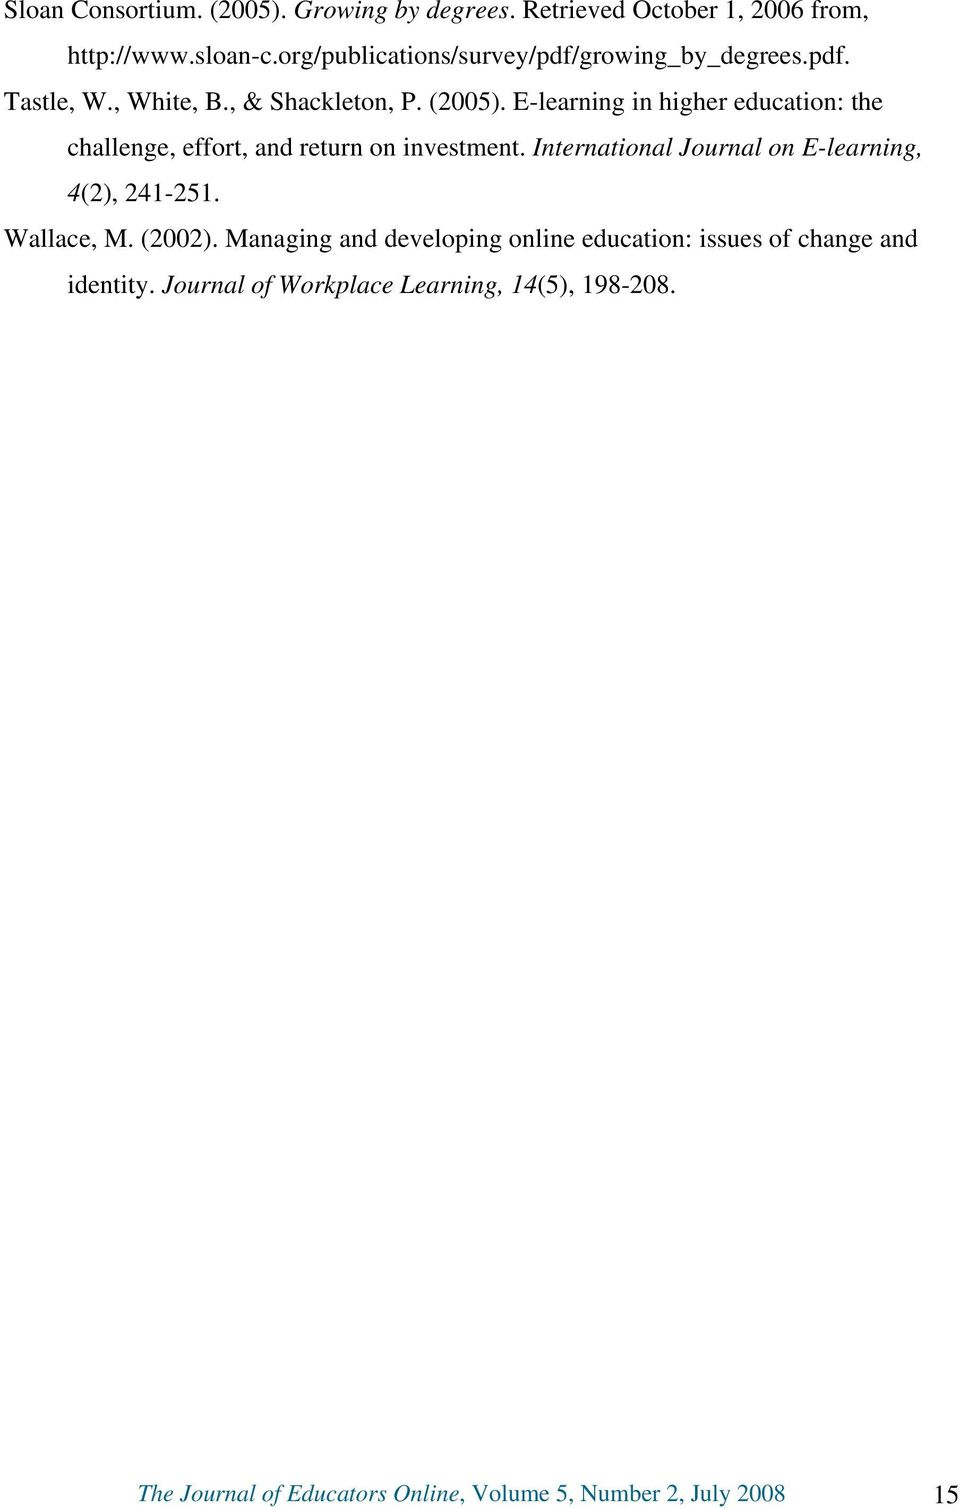 E-learning in higher education: the challenge, effort, and return on investment. International Journal on E-learning, 4(2), 241-251.